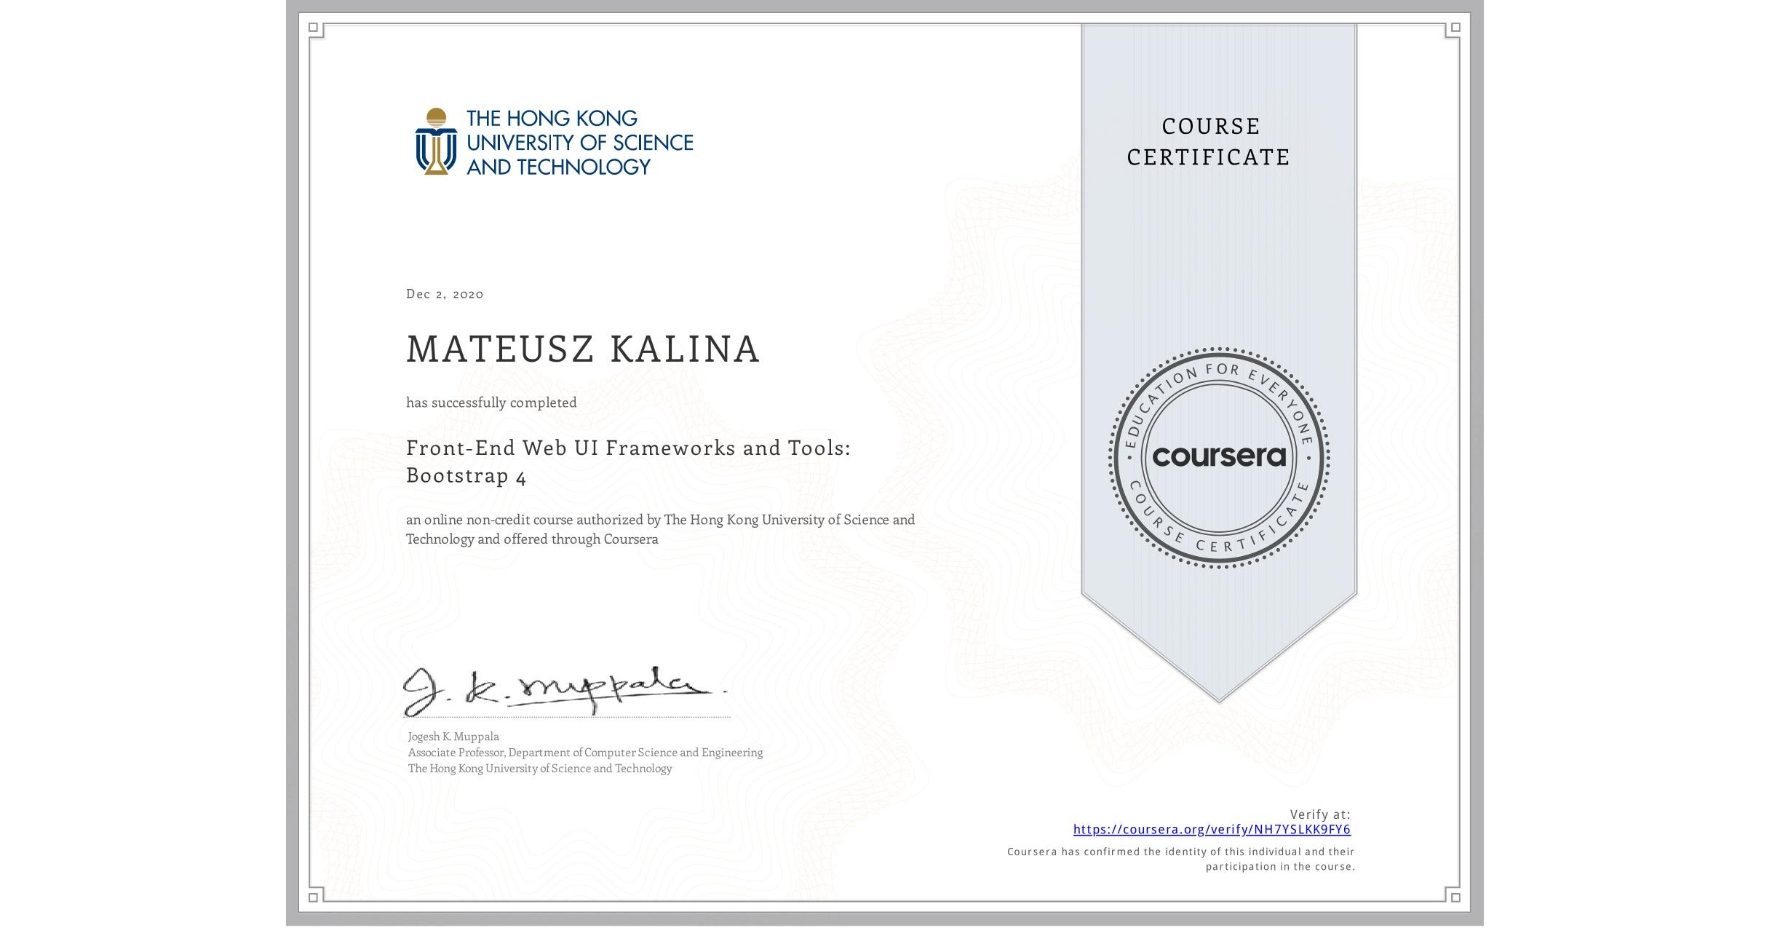 View certificate for MATEUSZ KALINA, Front-End Web UI Frameworks and Tools: Bootstrap 4, an online non-credit course authorized by The Hong Kong University of Science and Technology and offered through Coursera